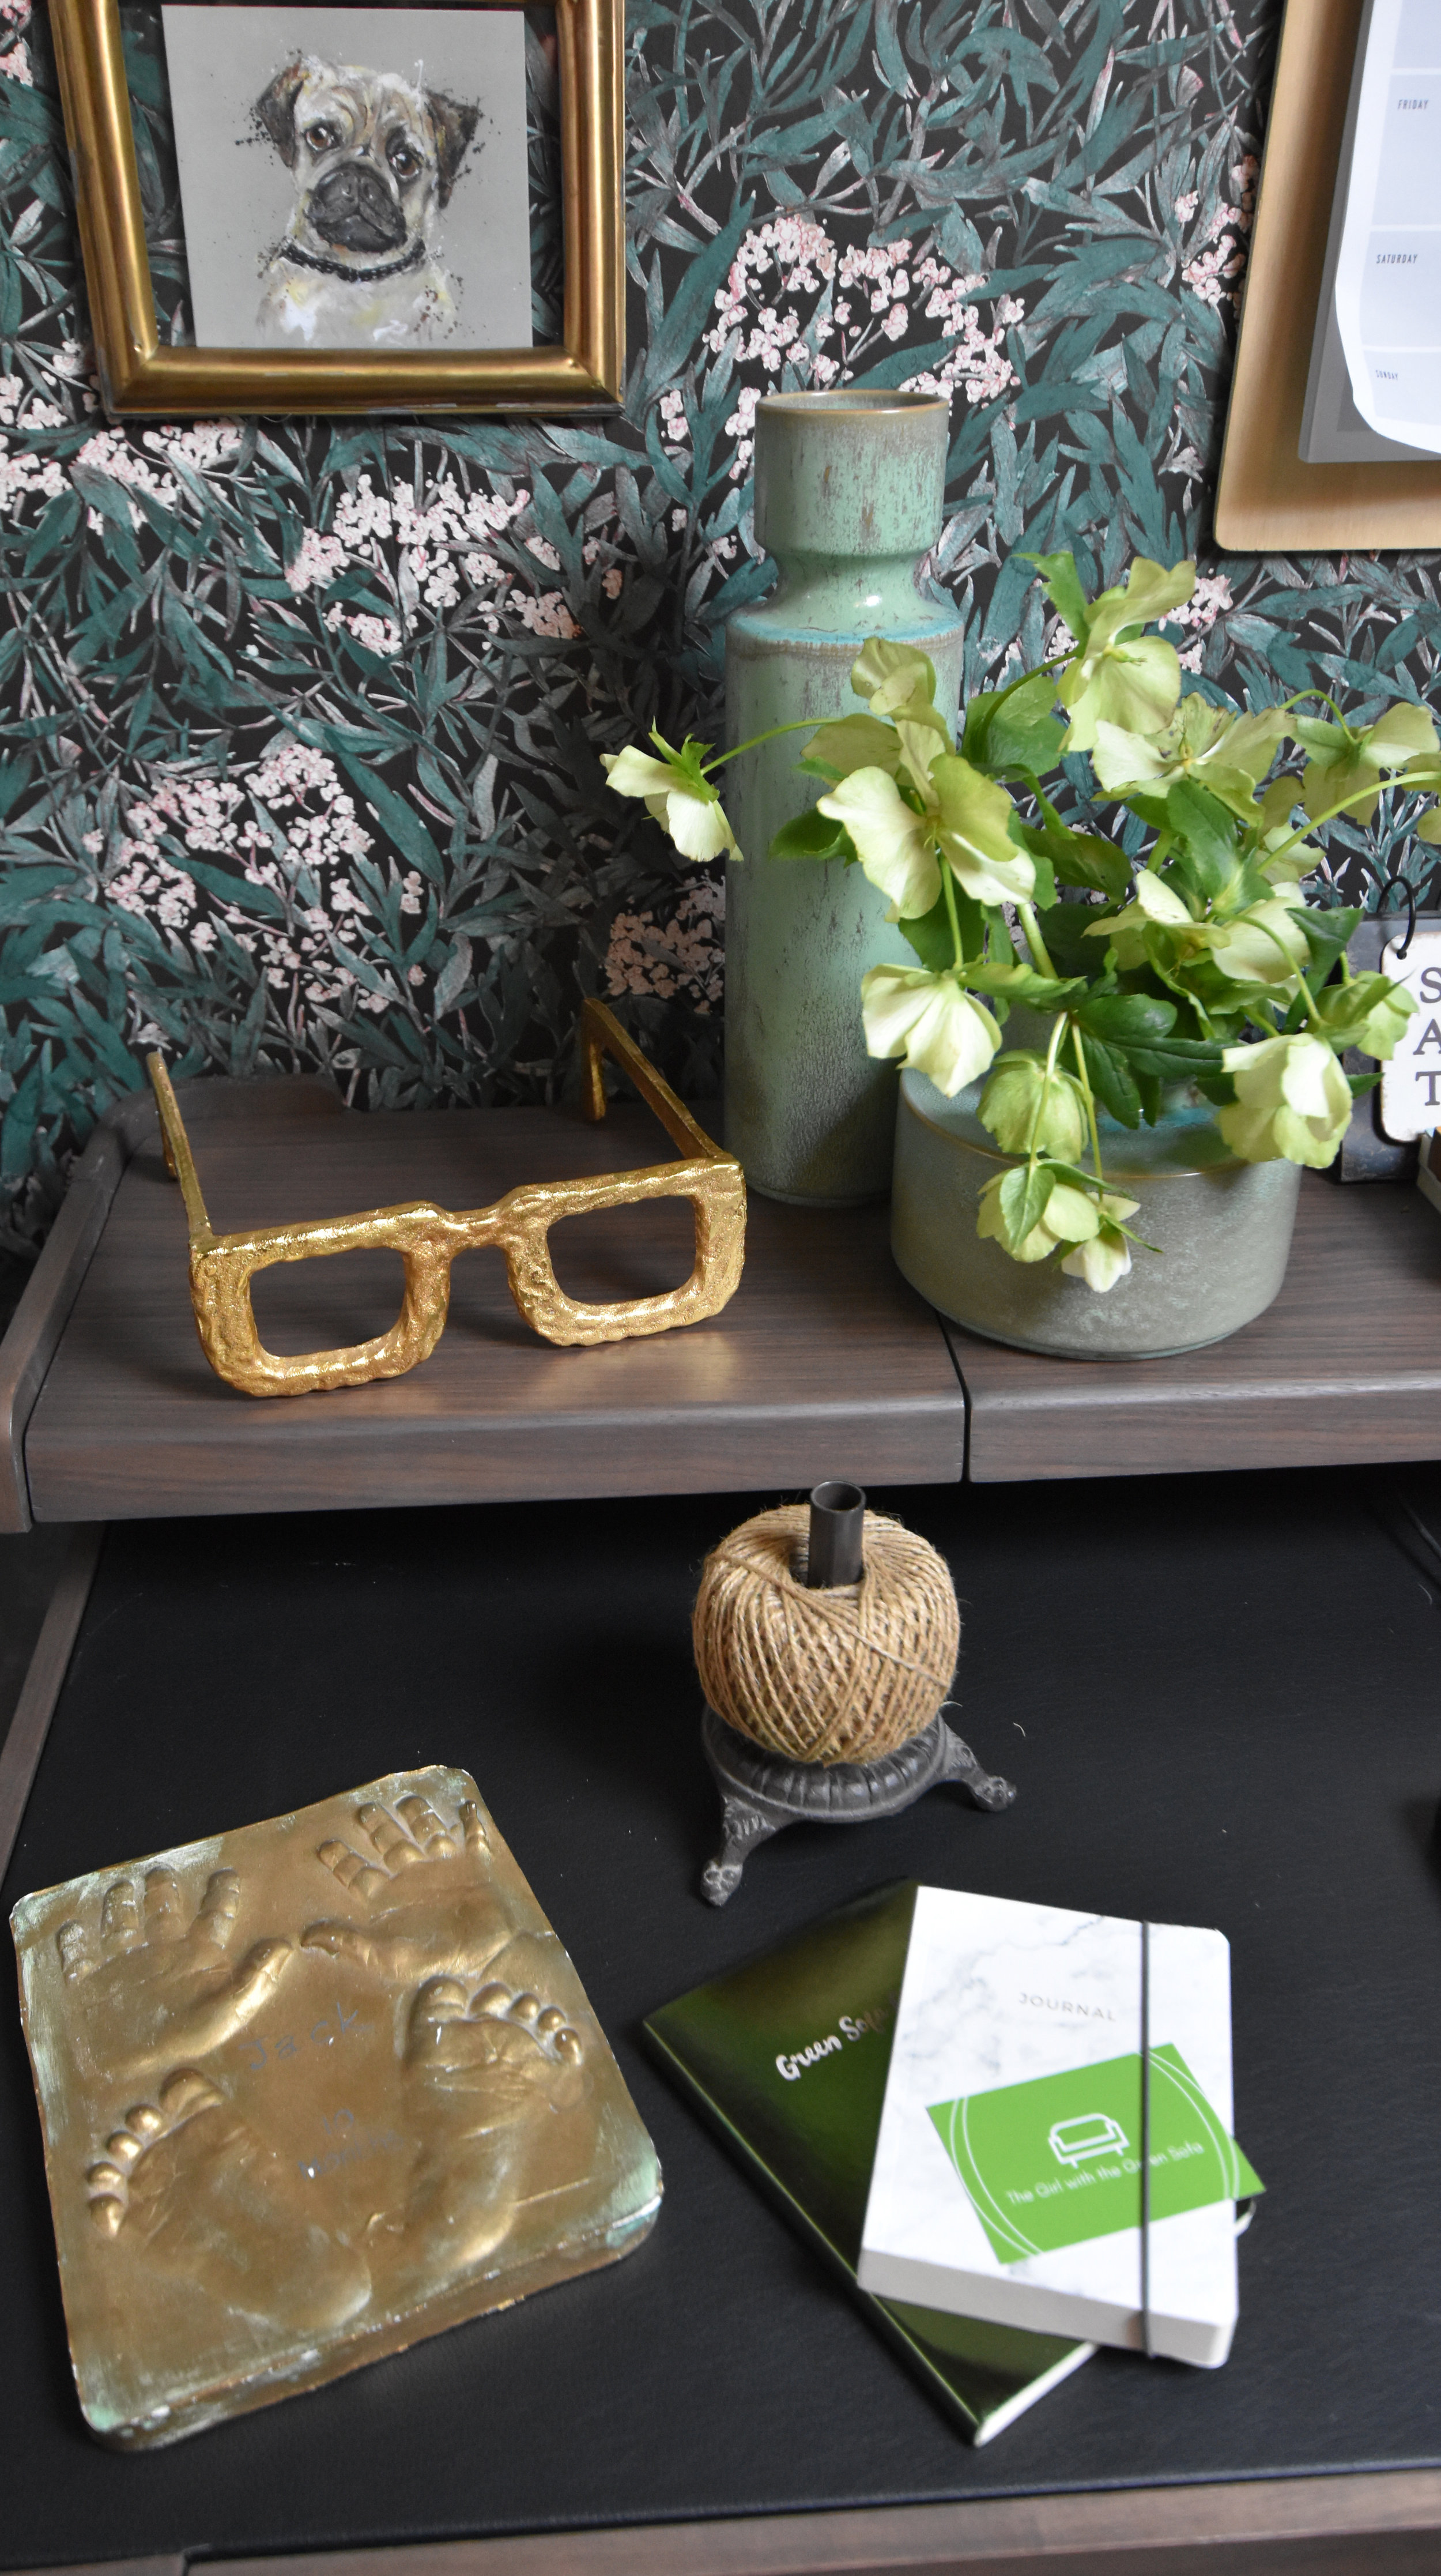 Here you can see one of my favourite treasures; baby feet and hands from my eldest son. The oversized glasses make me smile and add a quirky touch to the room.